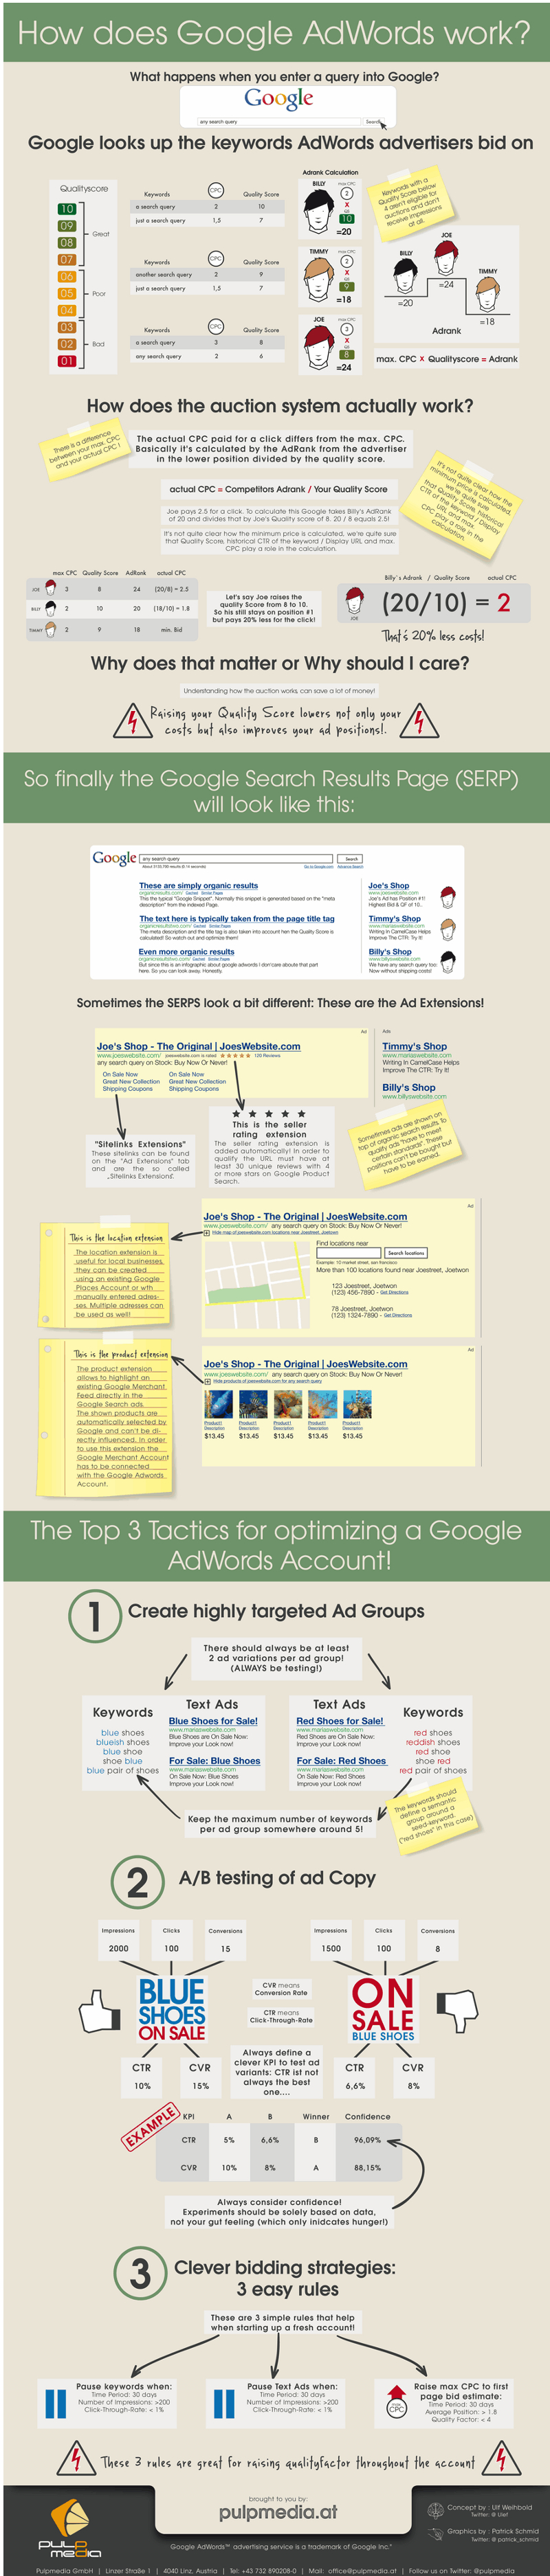 How Does PPC Work on Google Adwords